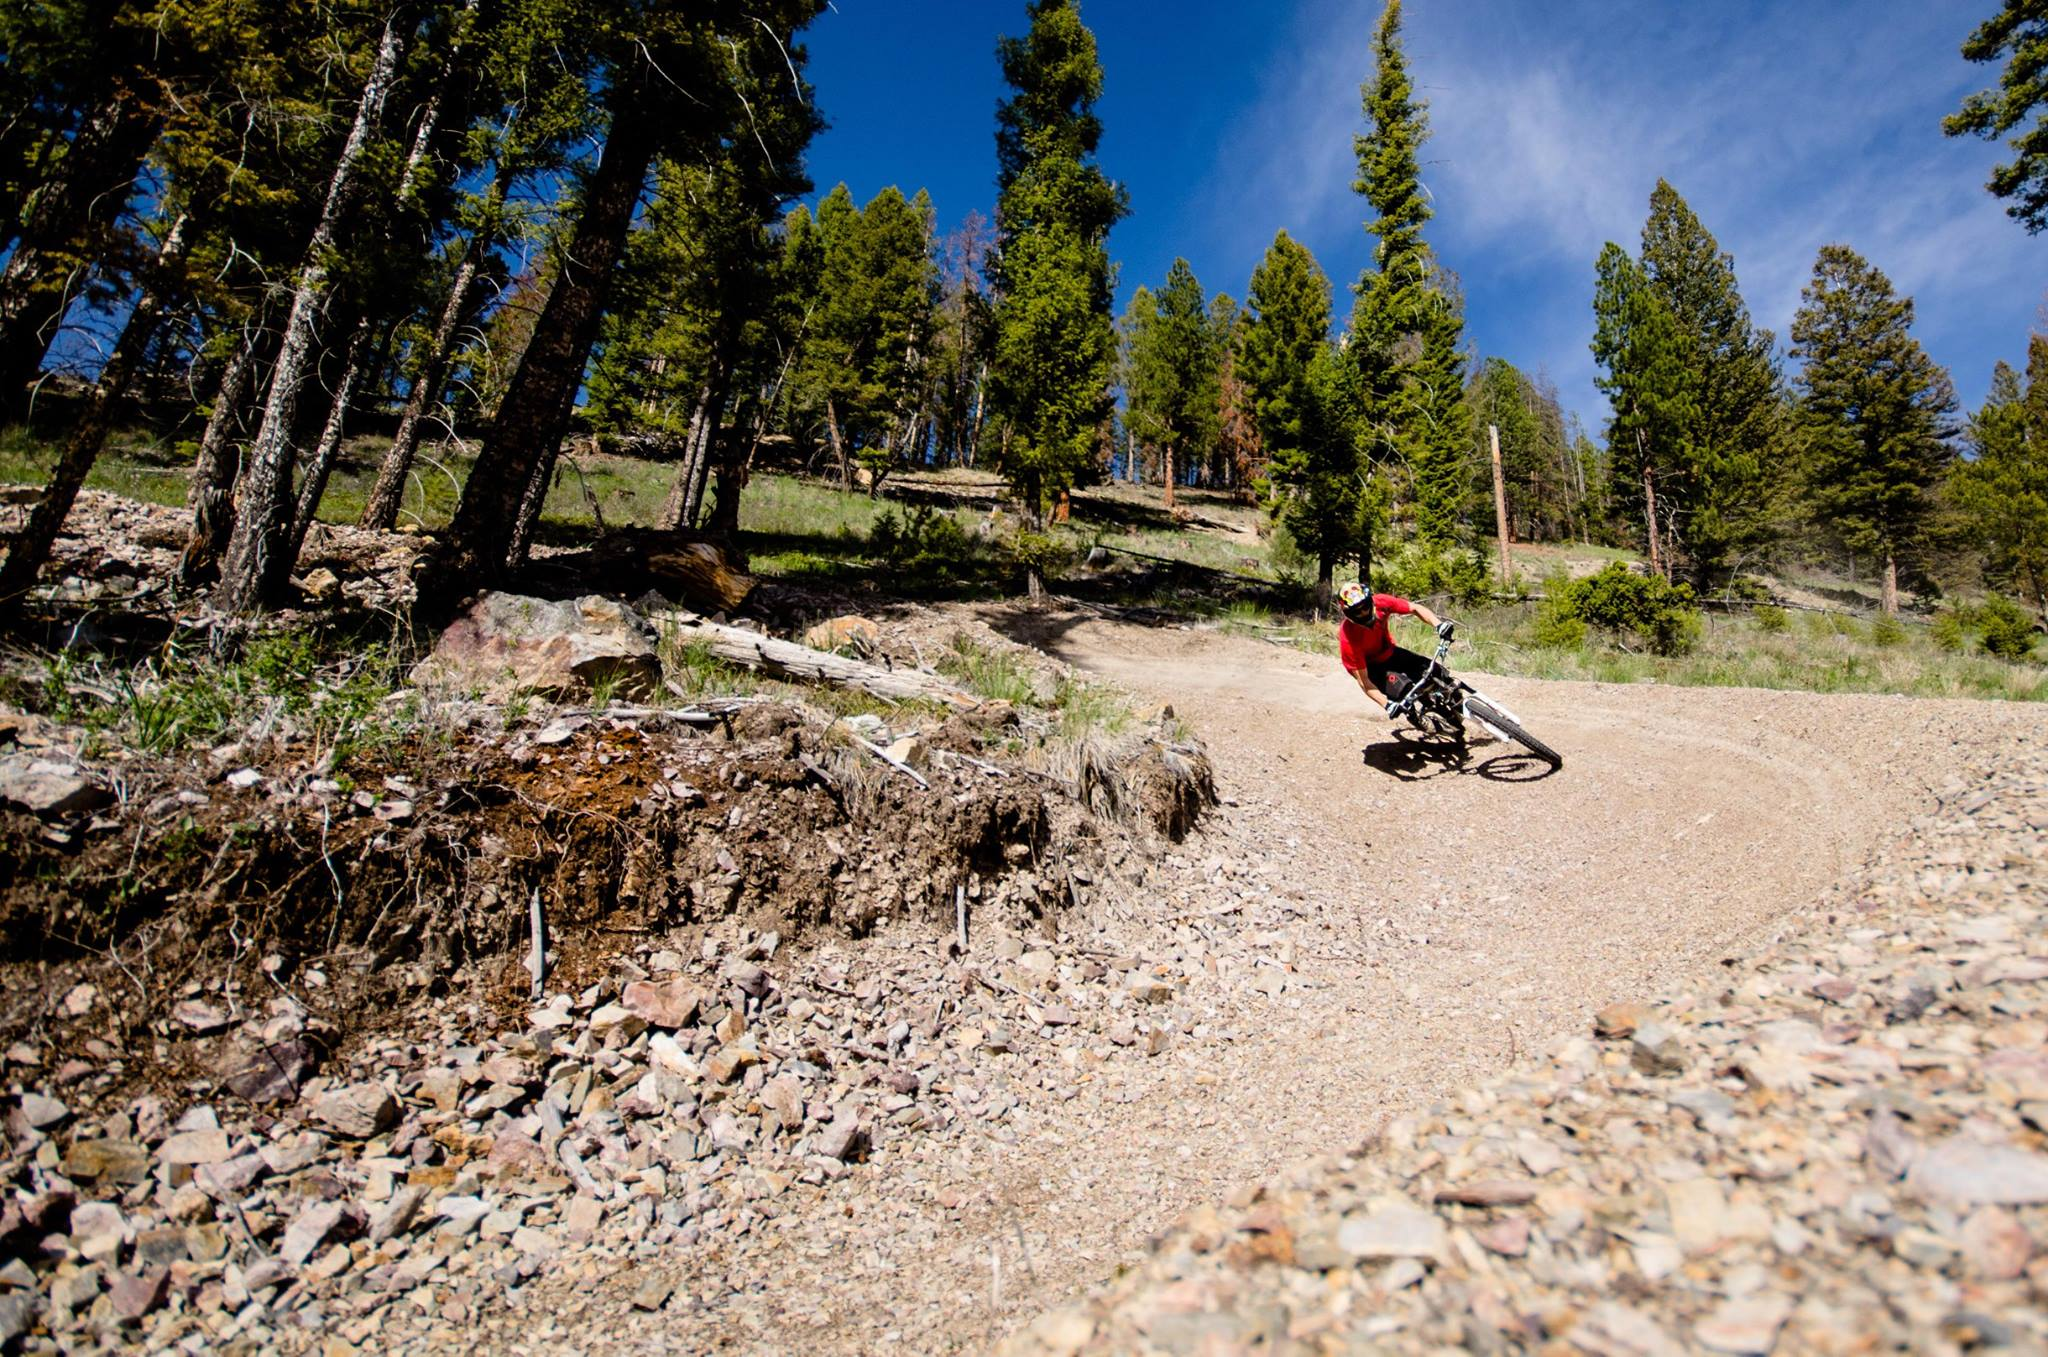 DISCOVERY BIKE PARK | FREE LIFT TICKETS | MTBPARKS PASS